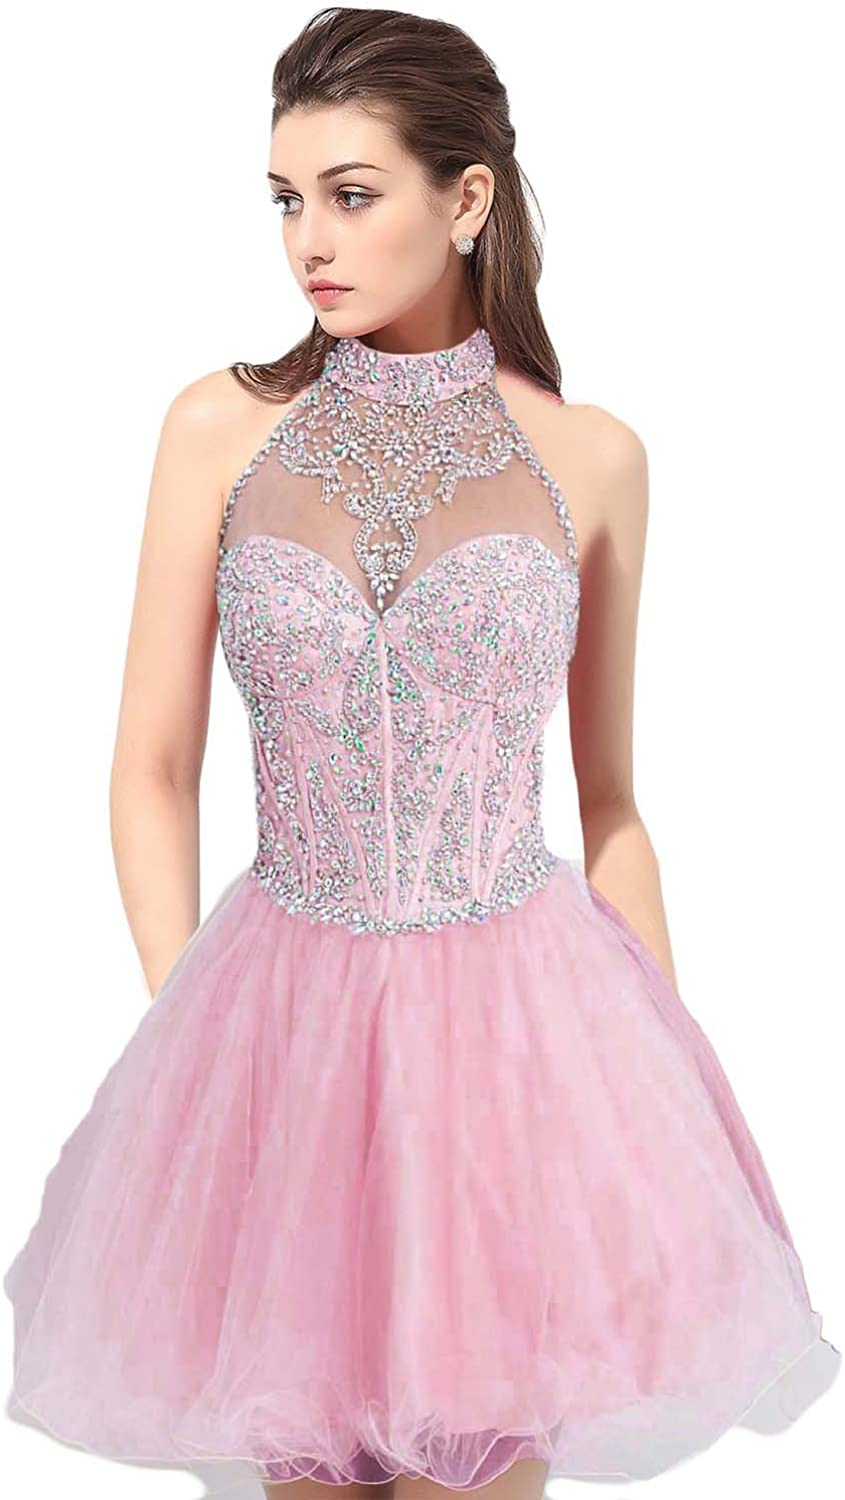 YSMei Women's Beaded Bodice Halter Tulle Prom Party Dress with Open Back ON026